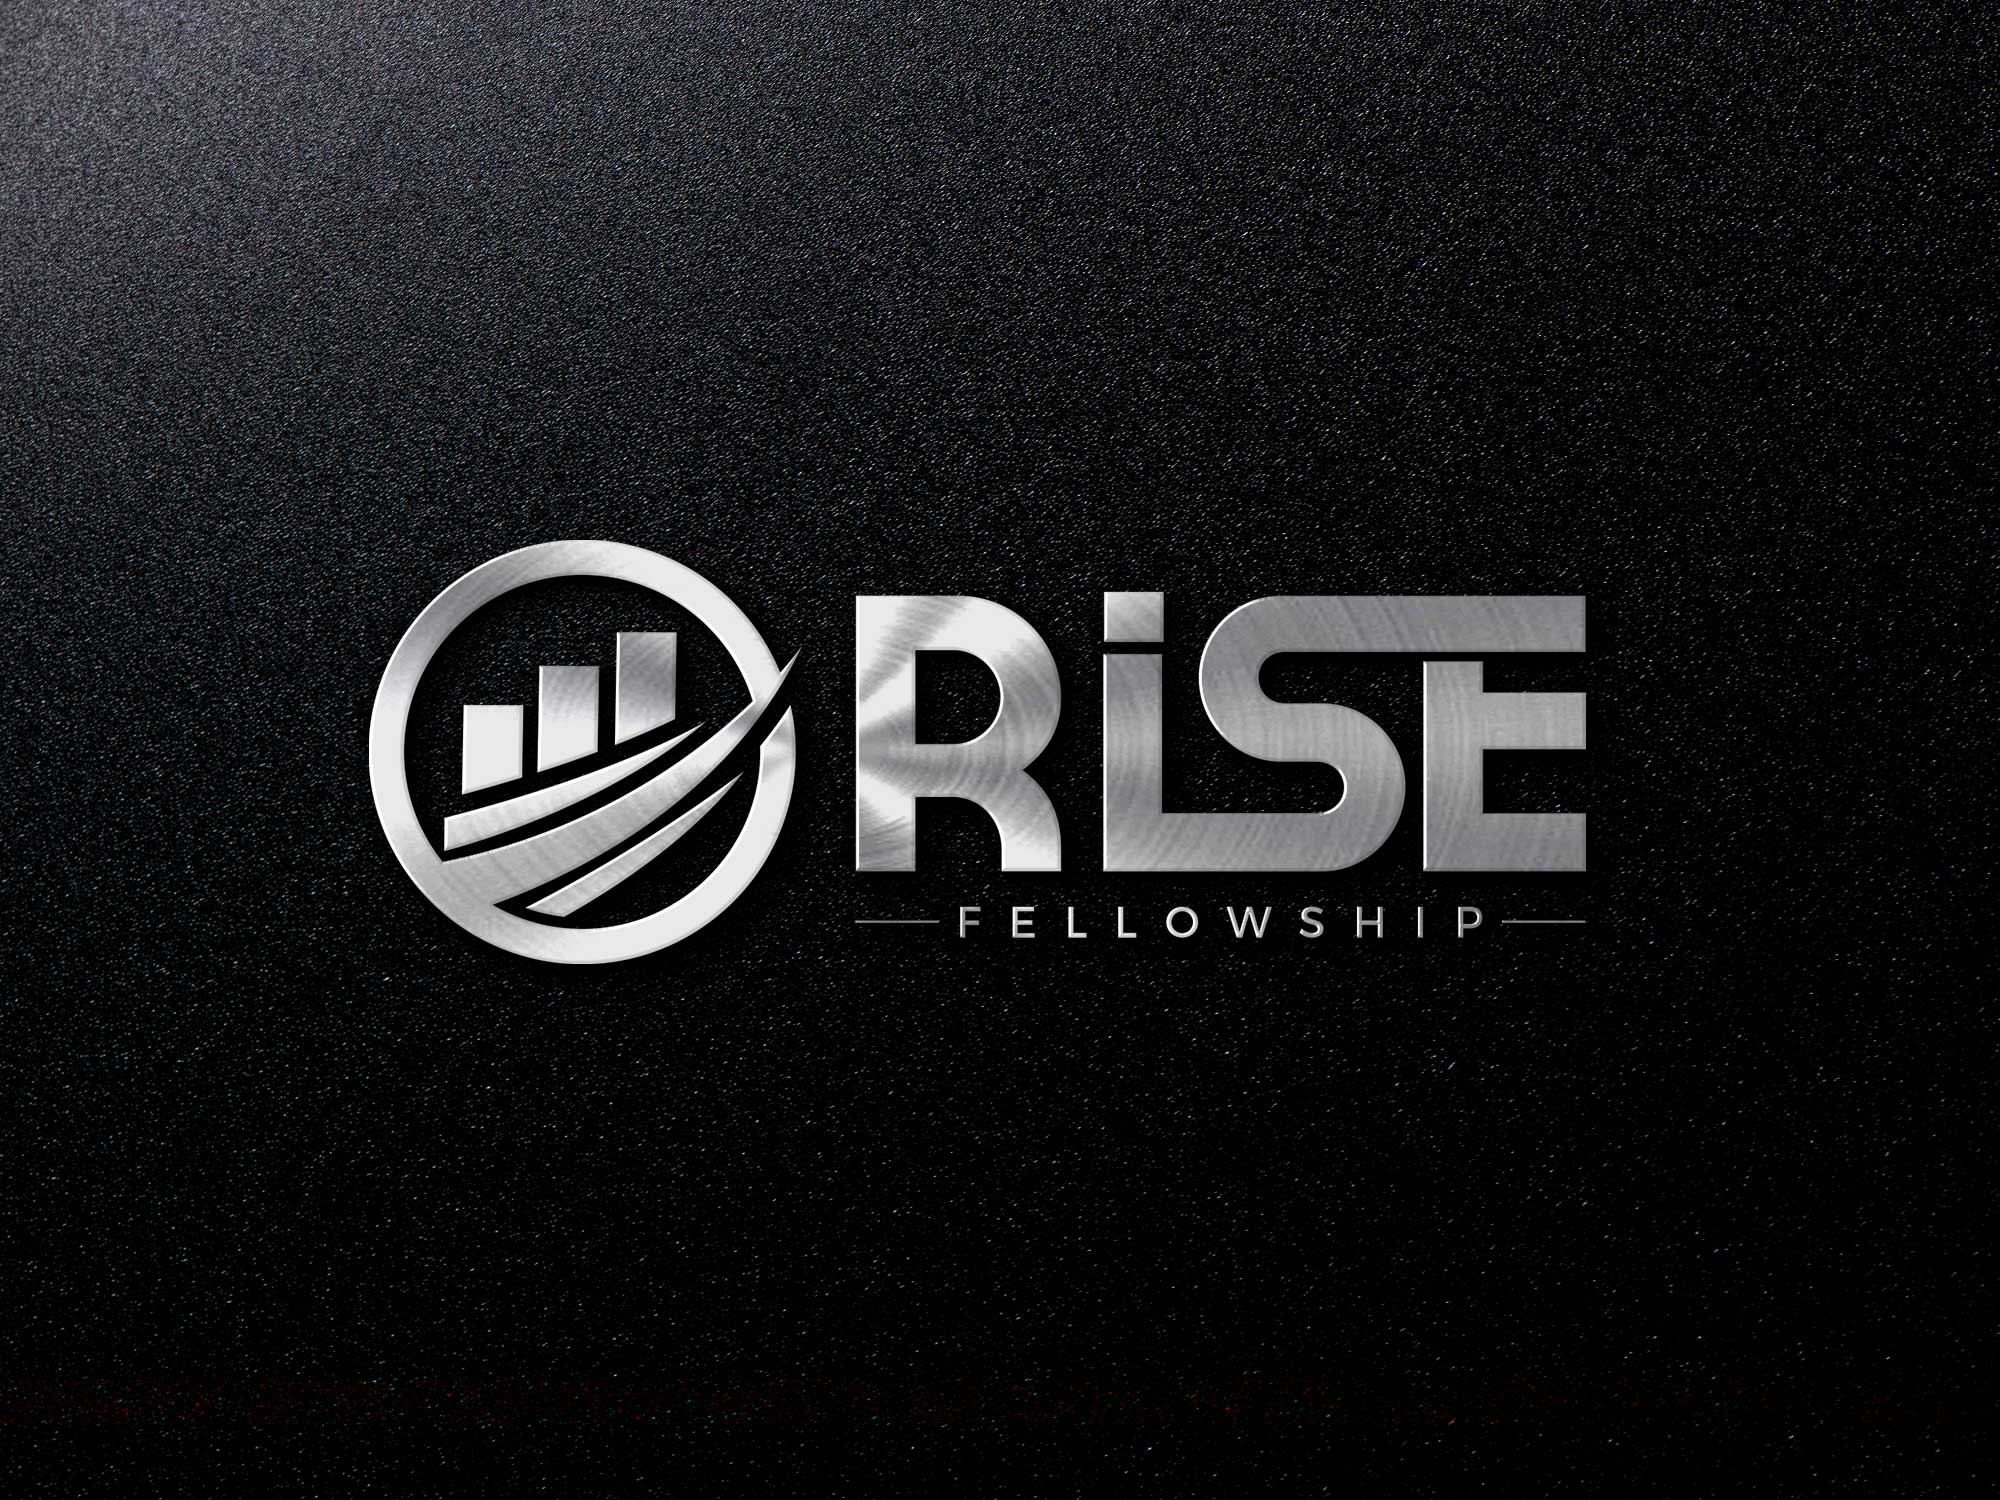 RISE FELLOWSHIP